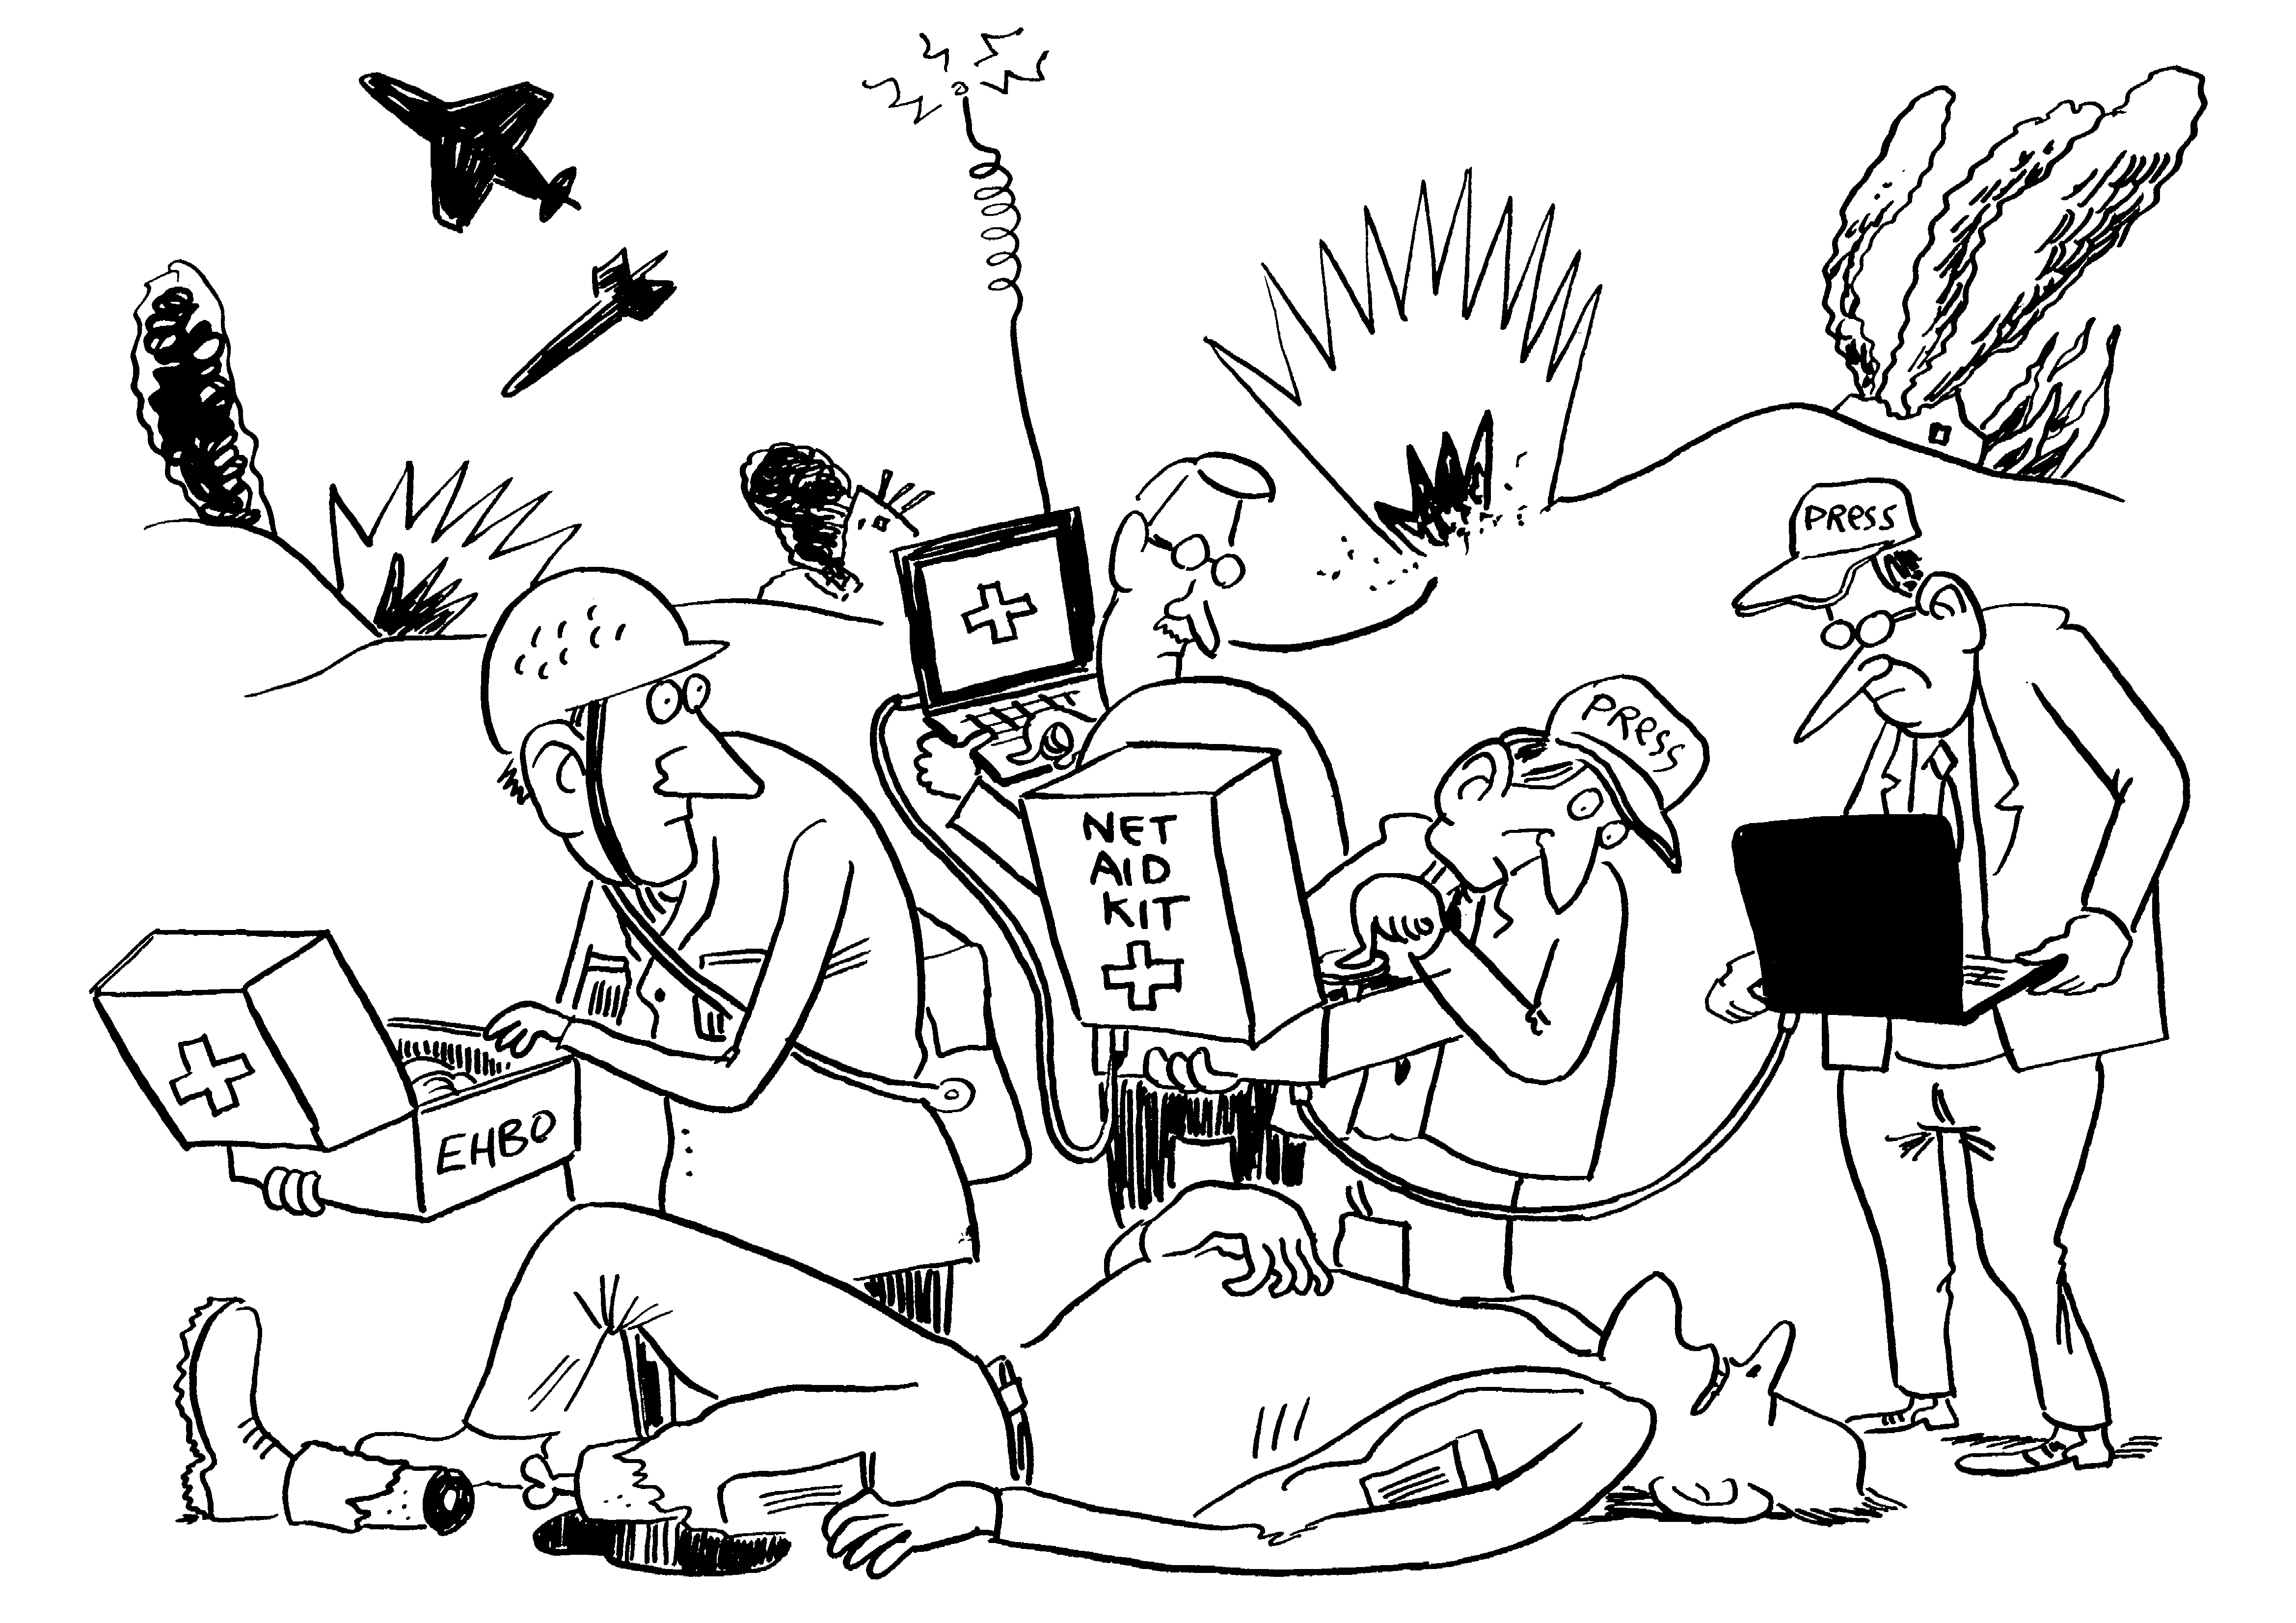 Cartoon of the NetAidKit from the ISOC.nl Innovation Award created by Michiel van de Pol/ComicHouse.nl